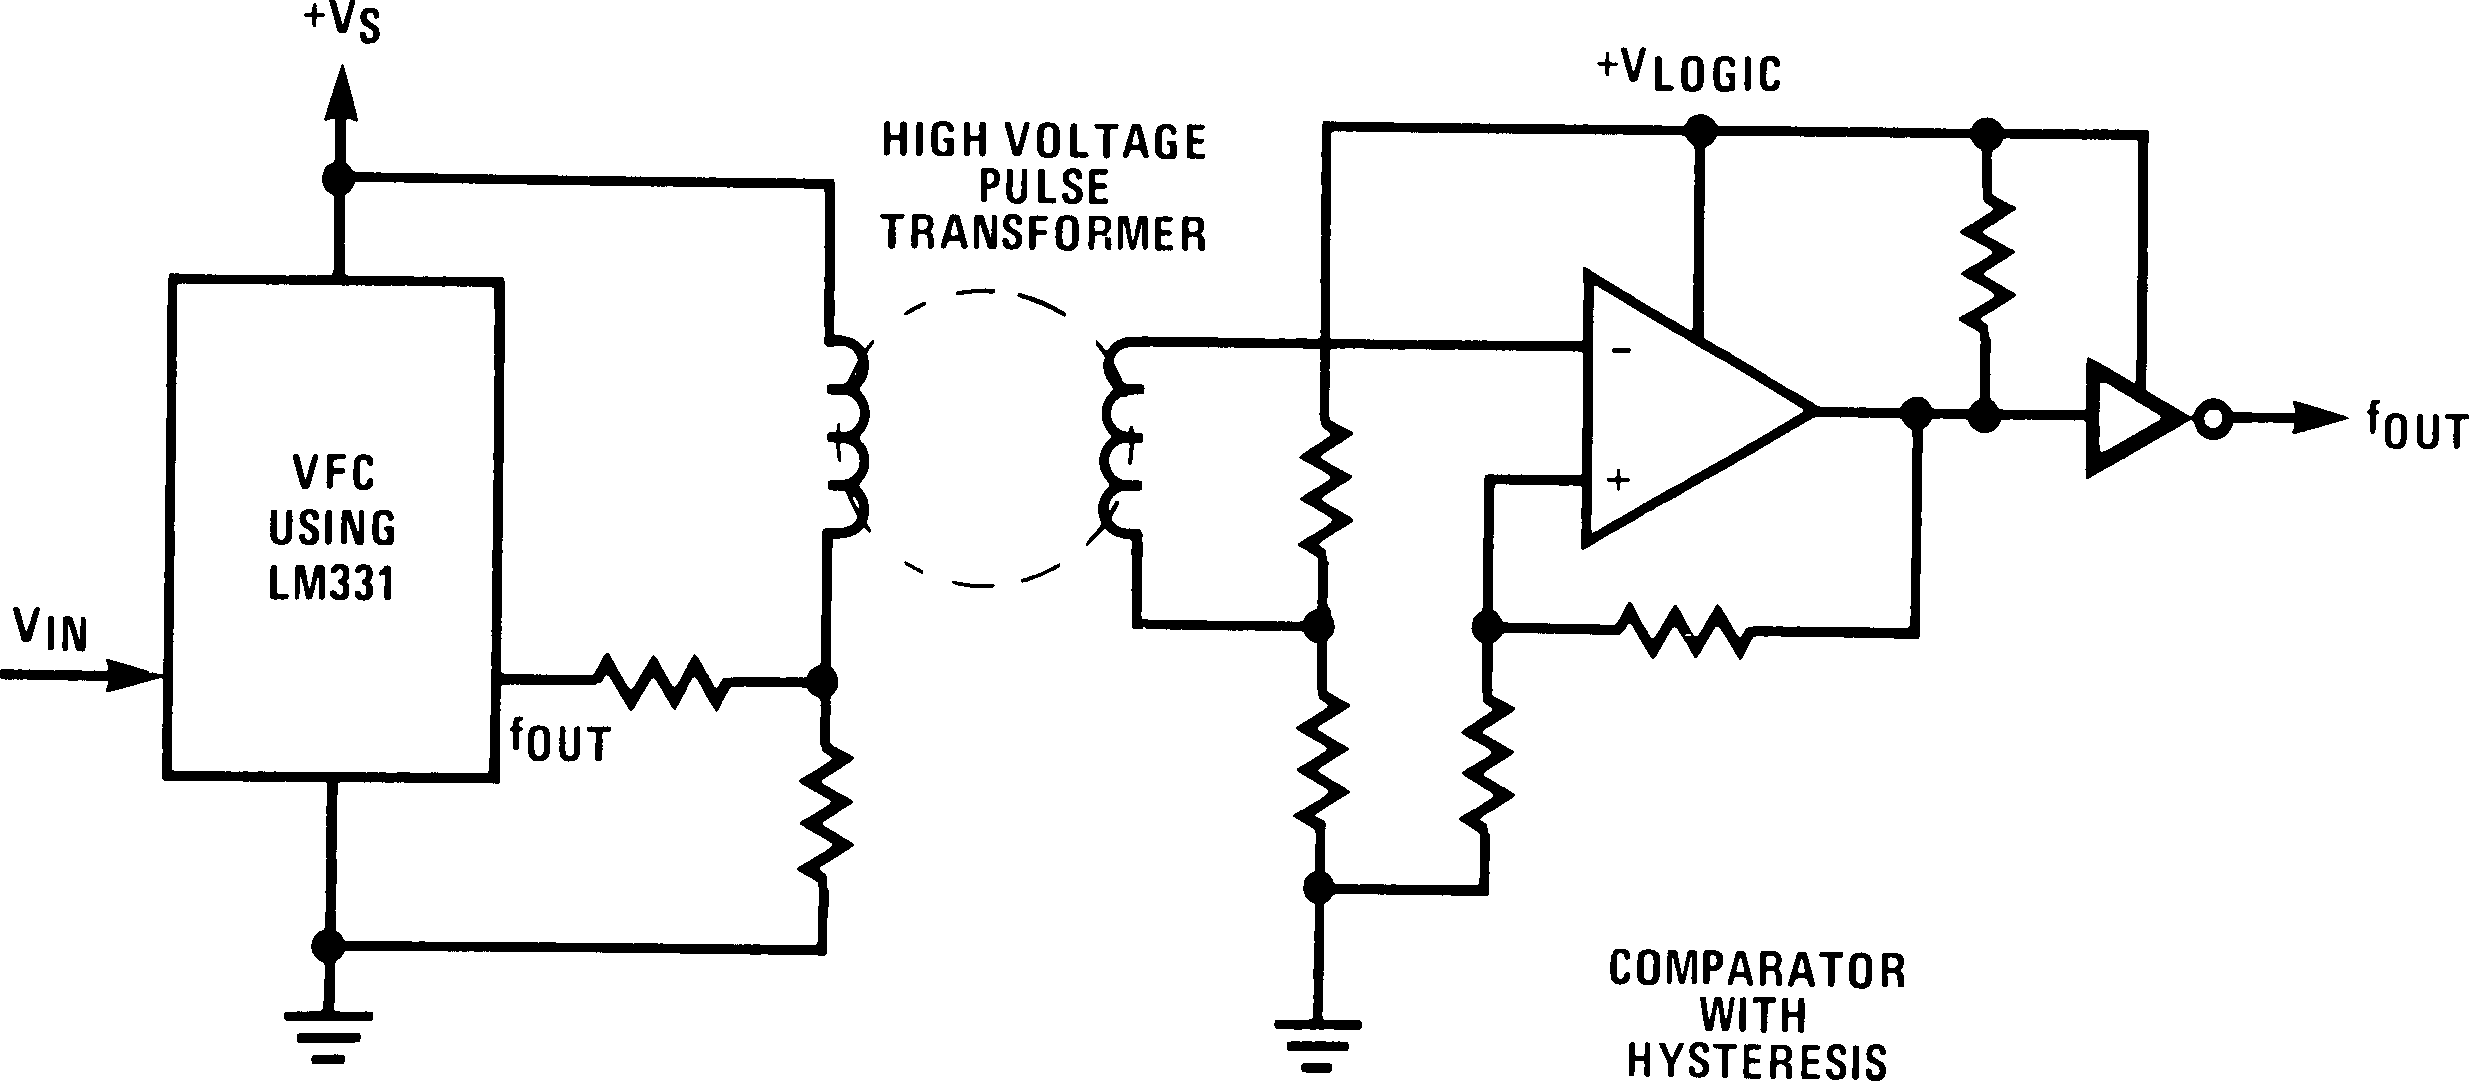 Lm331 Shown To Use Lm324 Voltage Comparator Composed Of A Test Circuit It Lm231 00568017